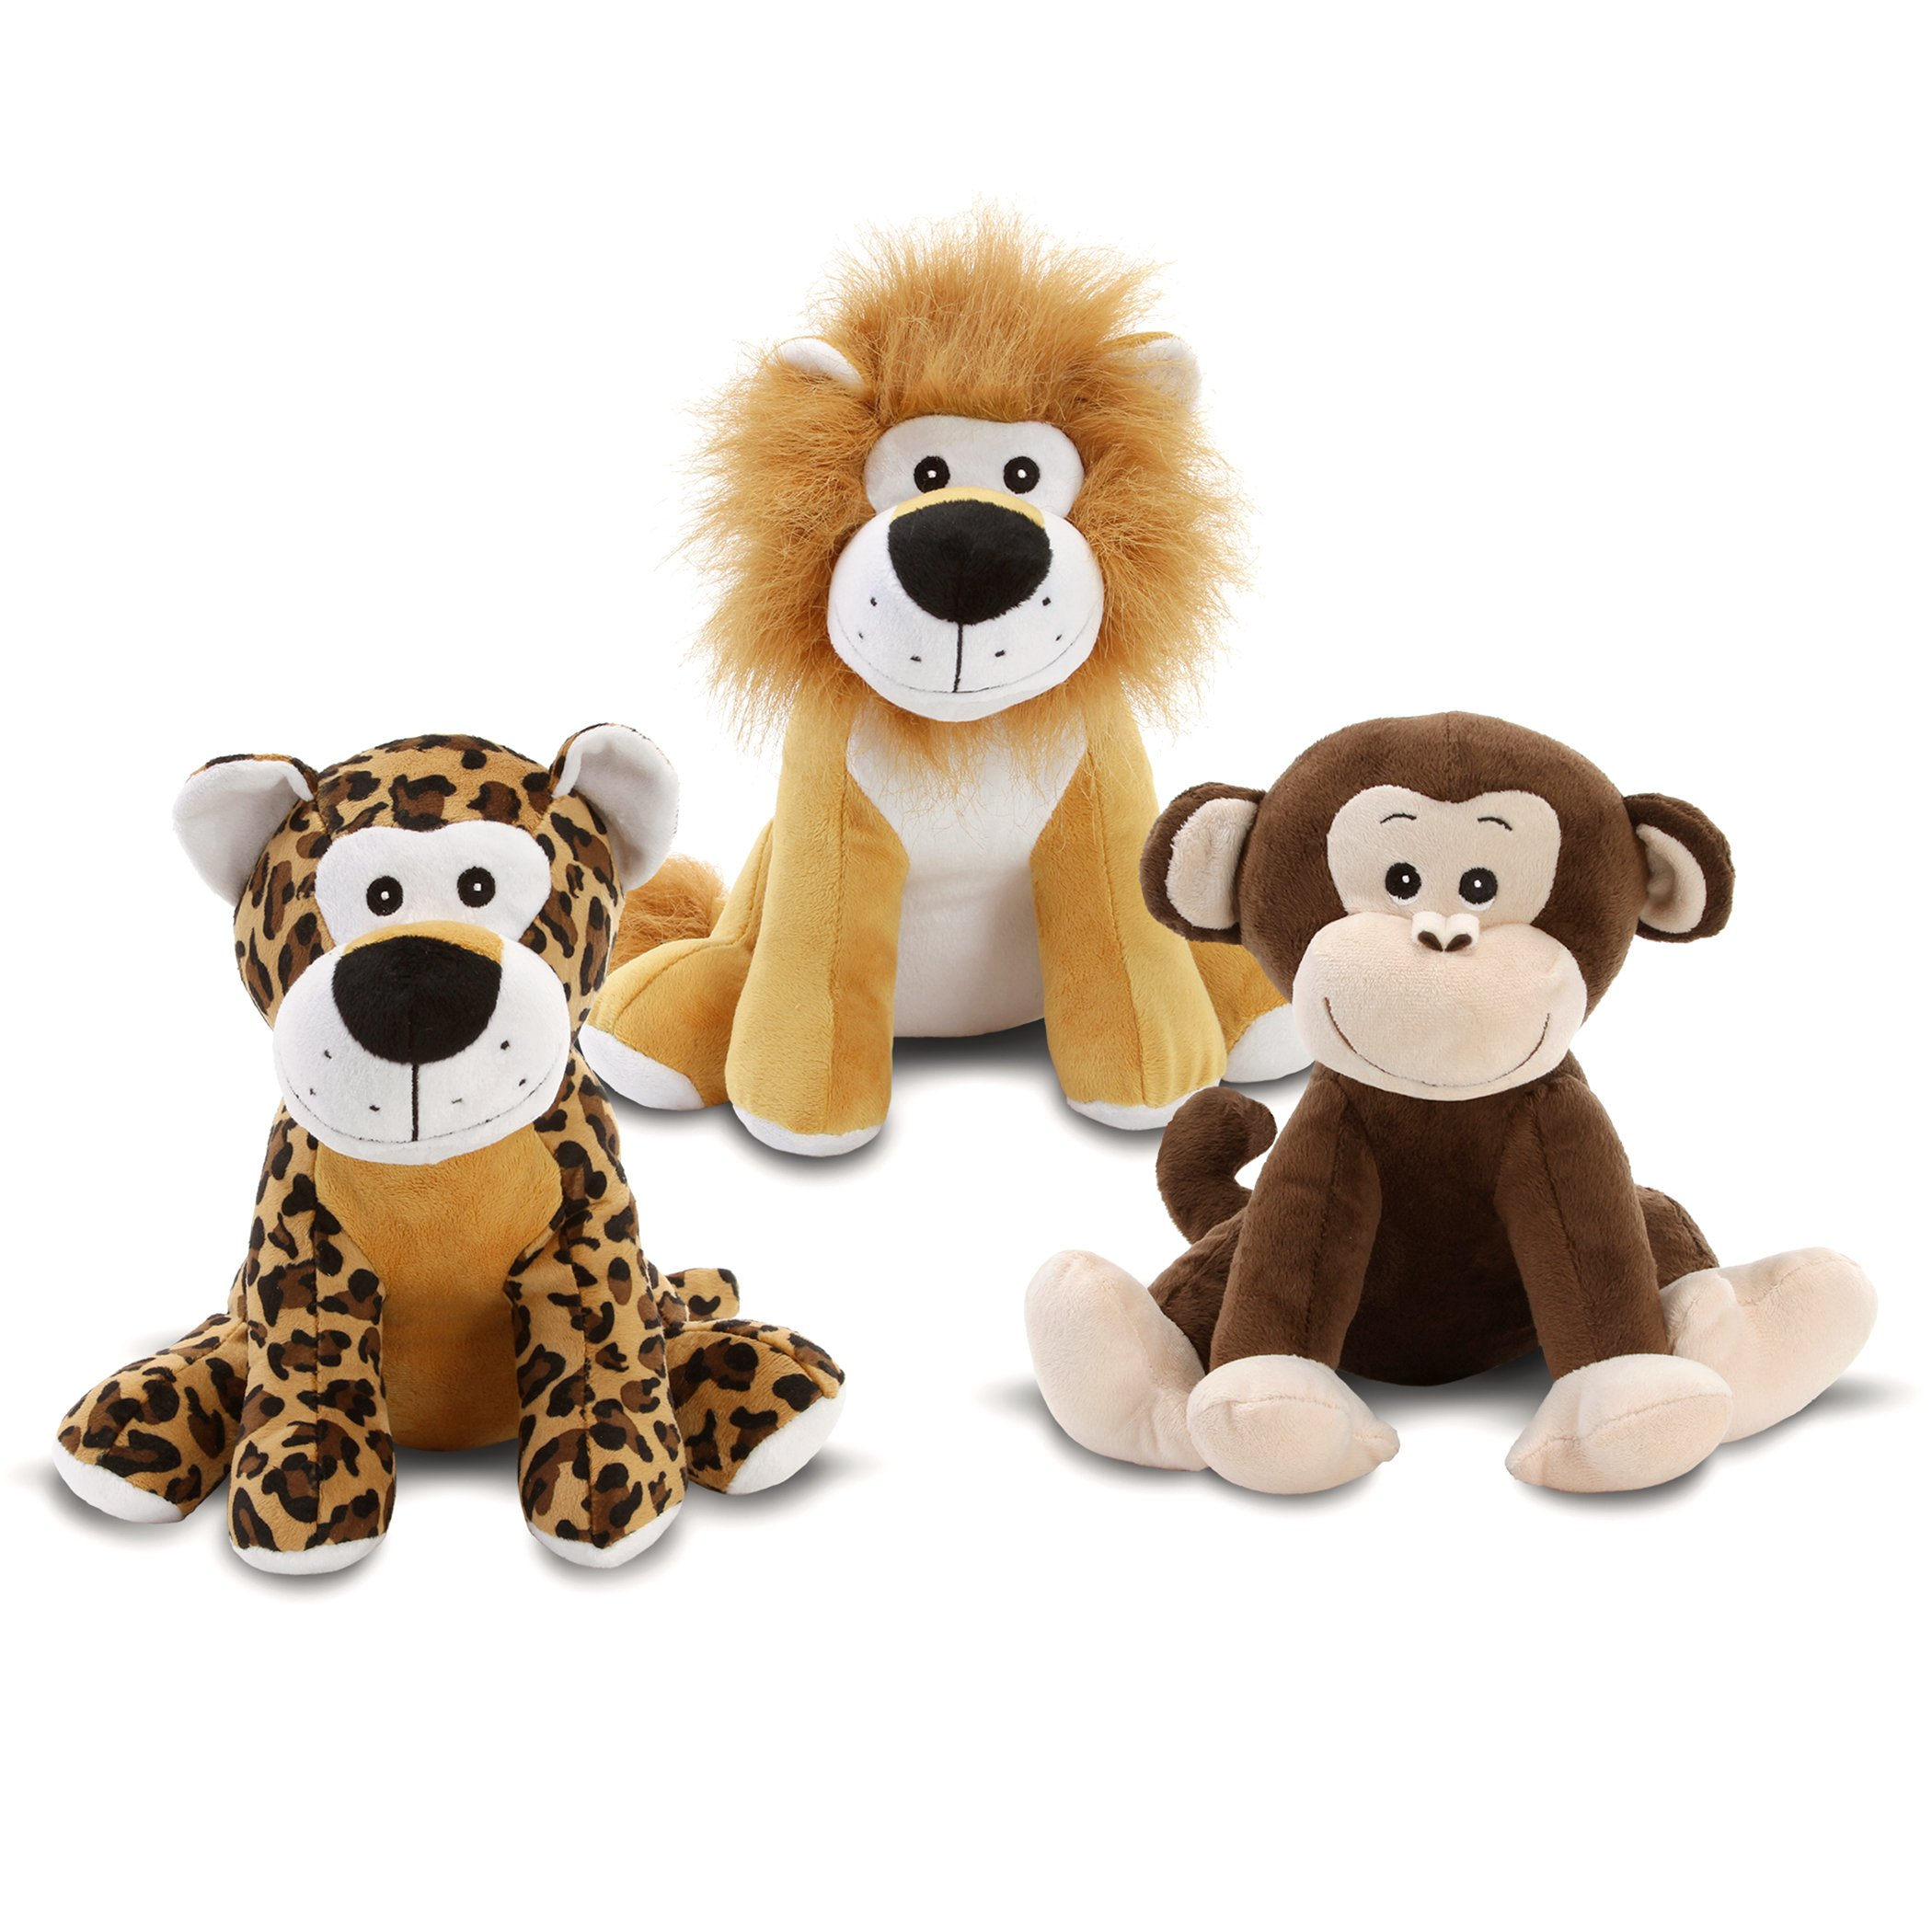 Gift Delight Jungle Pals Plush (Set of 3) by Gift Delight